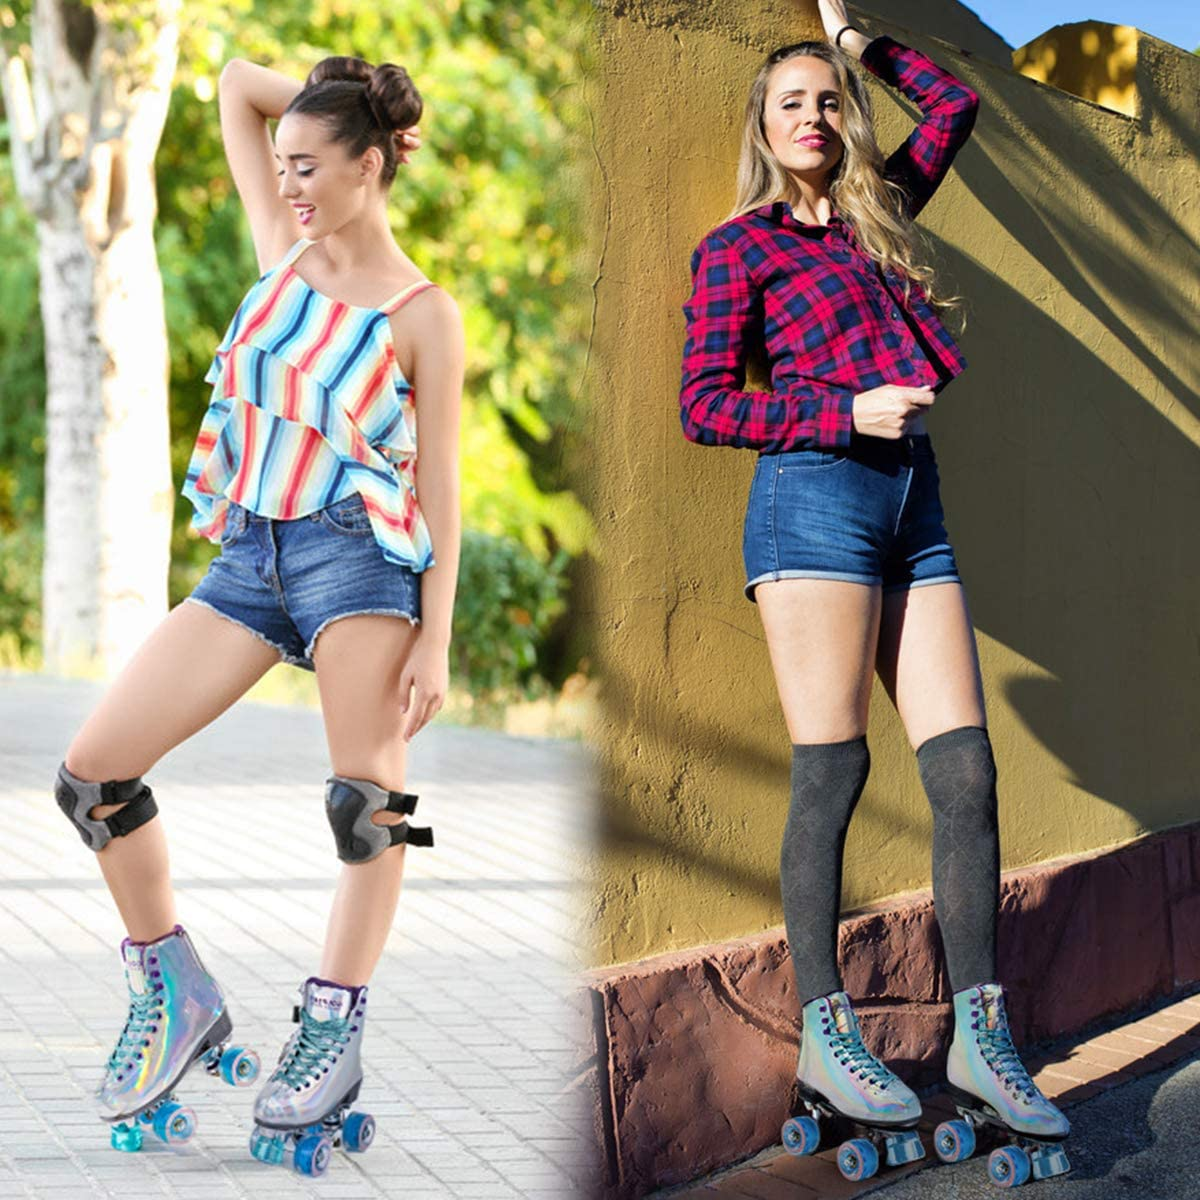 Goupsky Roller Skate Shoes for Women//Youth Retro 4 Wheels Quad Skates for Outdoor /& Indoor